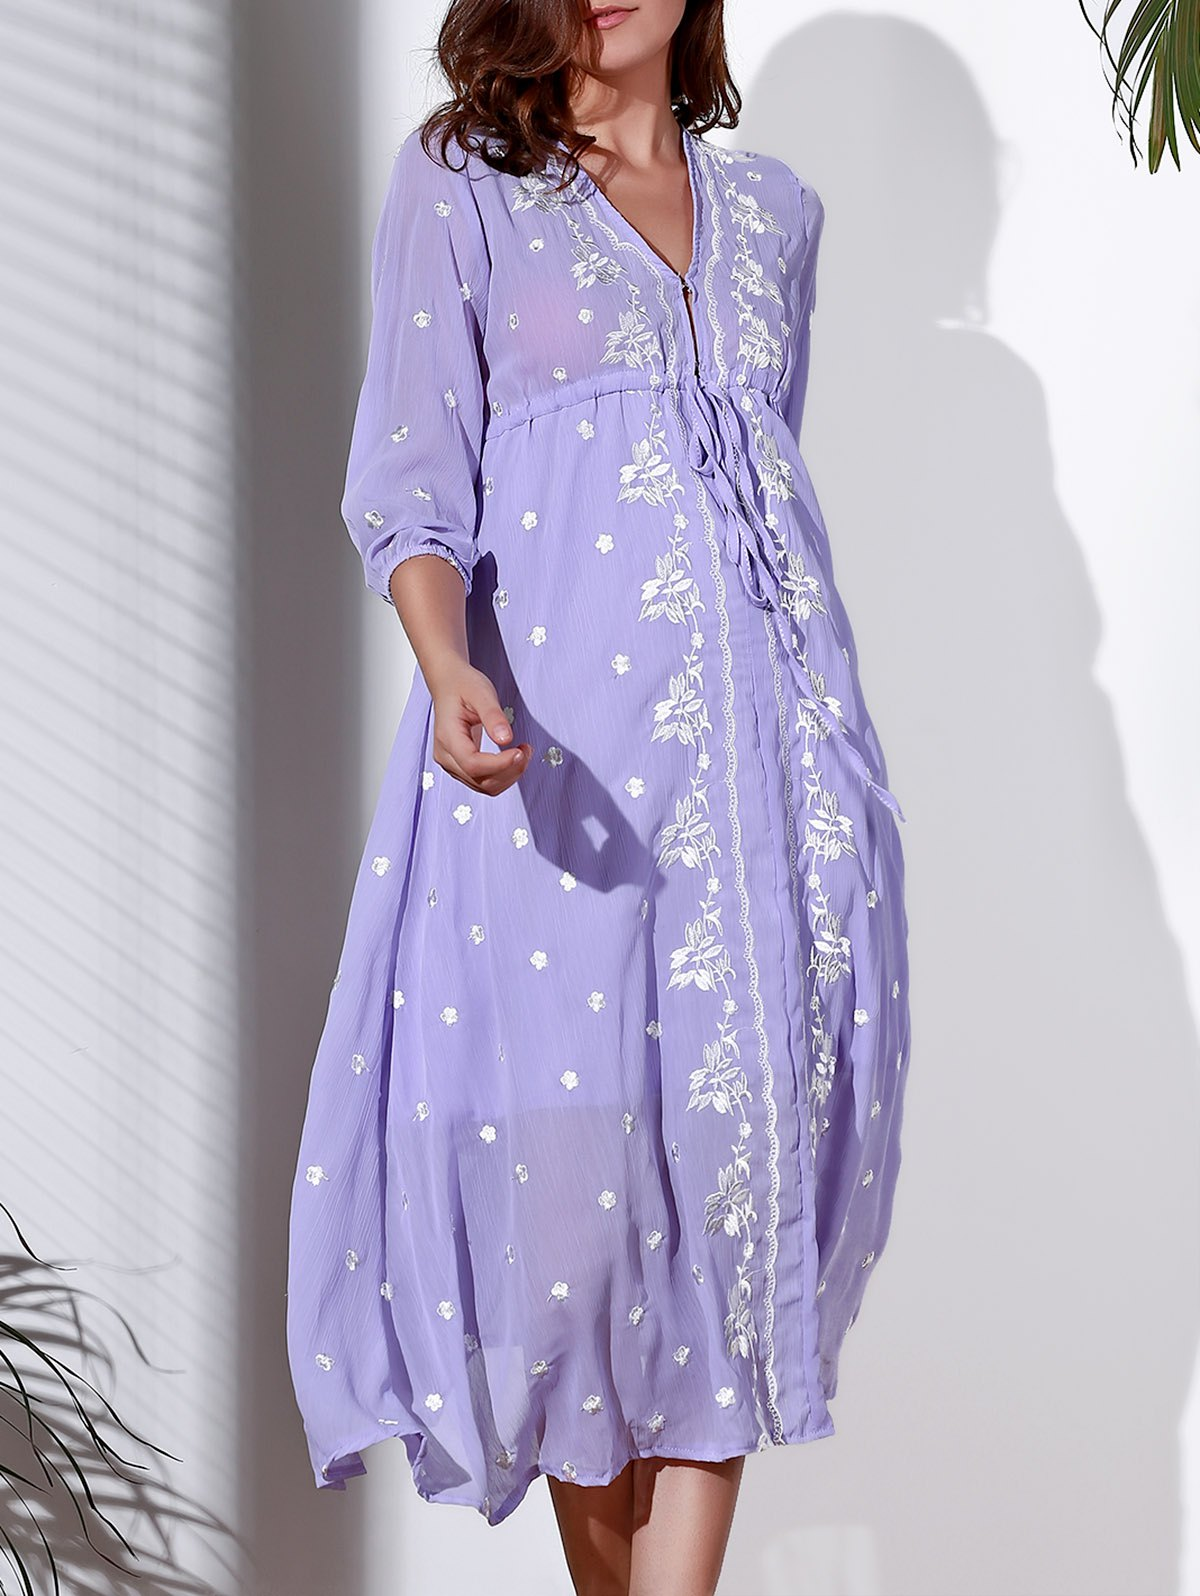 Refreshing Embroidered Plunging Neck 3/4 Sleeve Midi Dress For Women - LIGHT PURPLE M